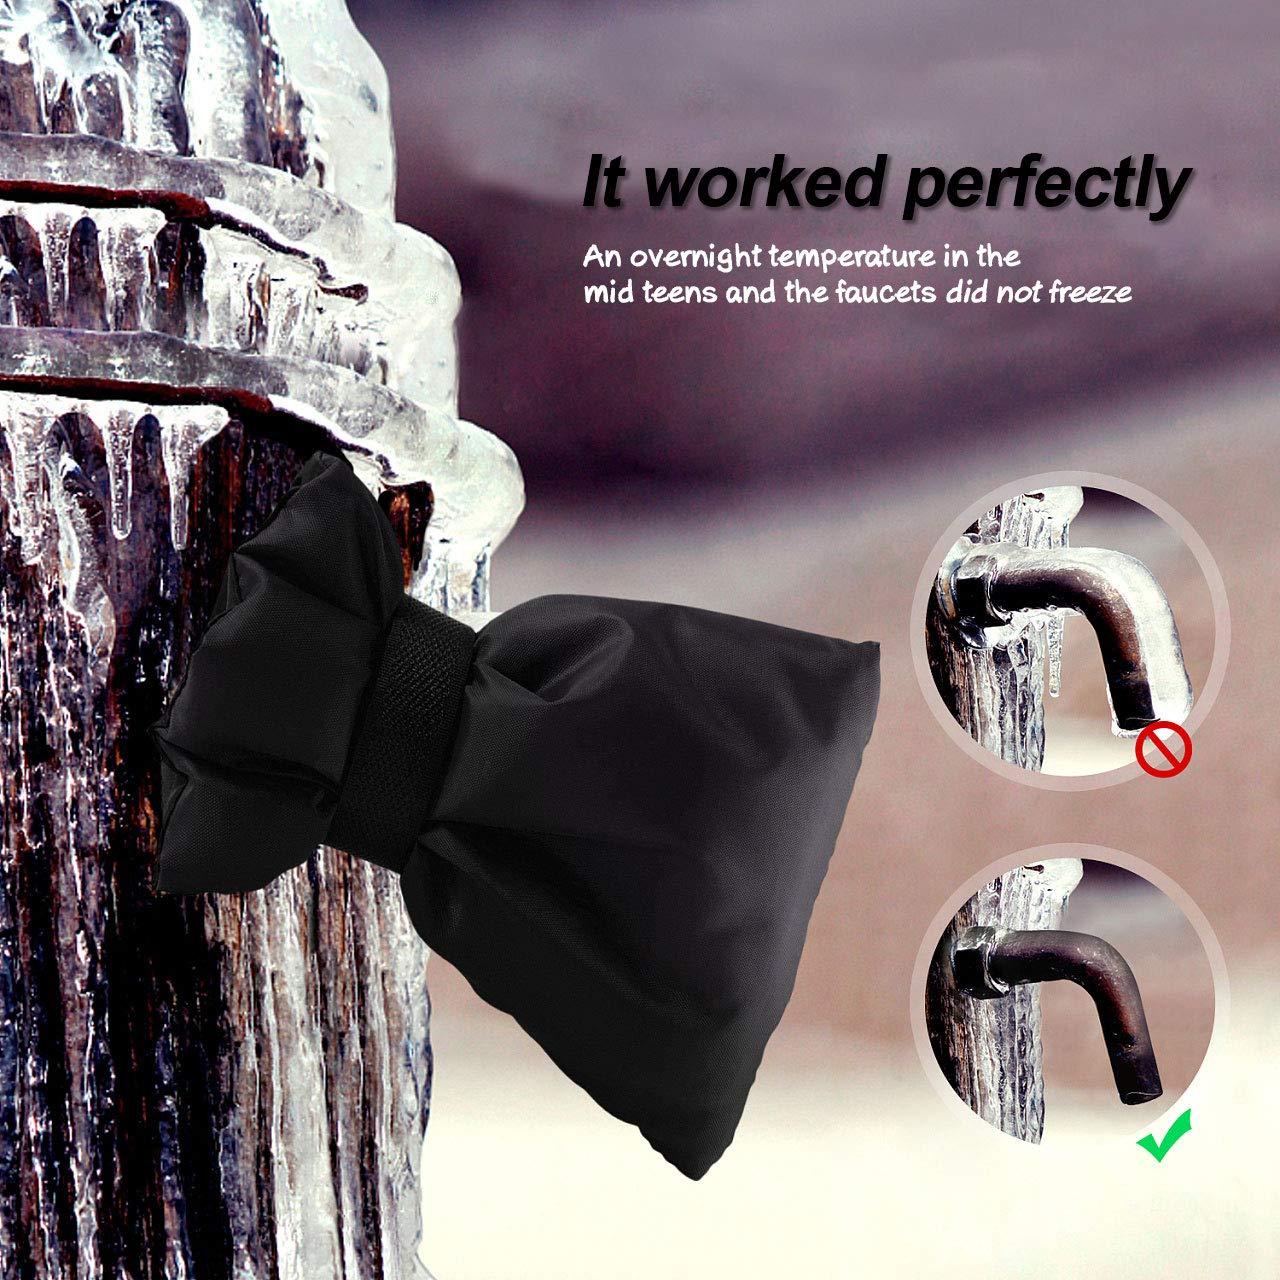 Serendipper Outdoor Faucet Covers Protector, Faucet Socks for Winter, 8.66\'\'x 6.3\'\', 210D Oxford Reusable Faucet Insulation, 3 Pack